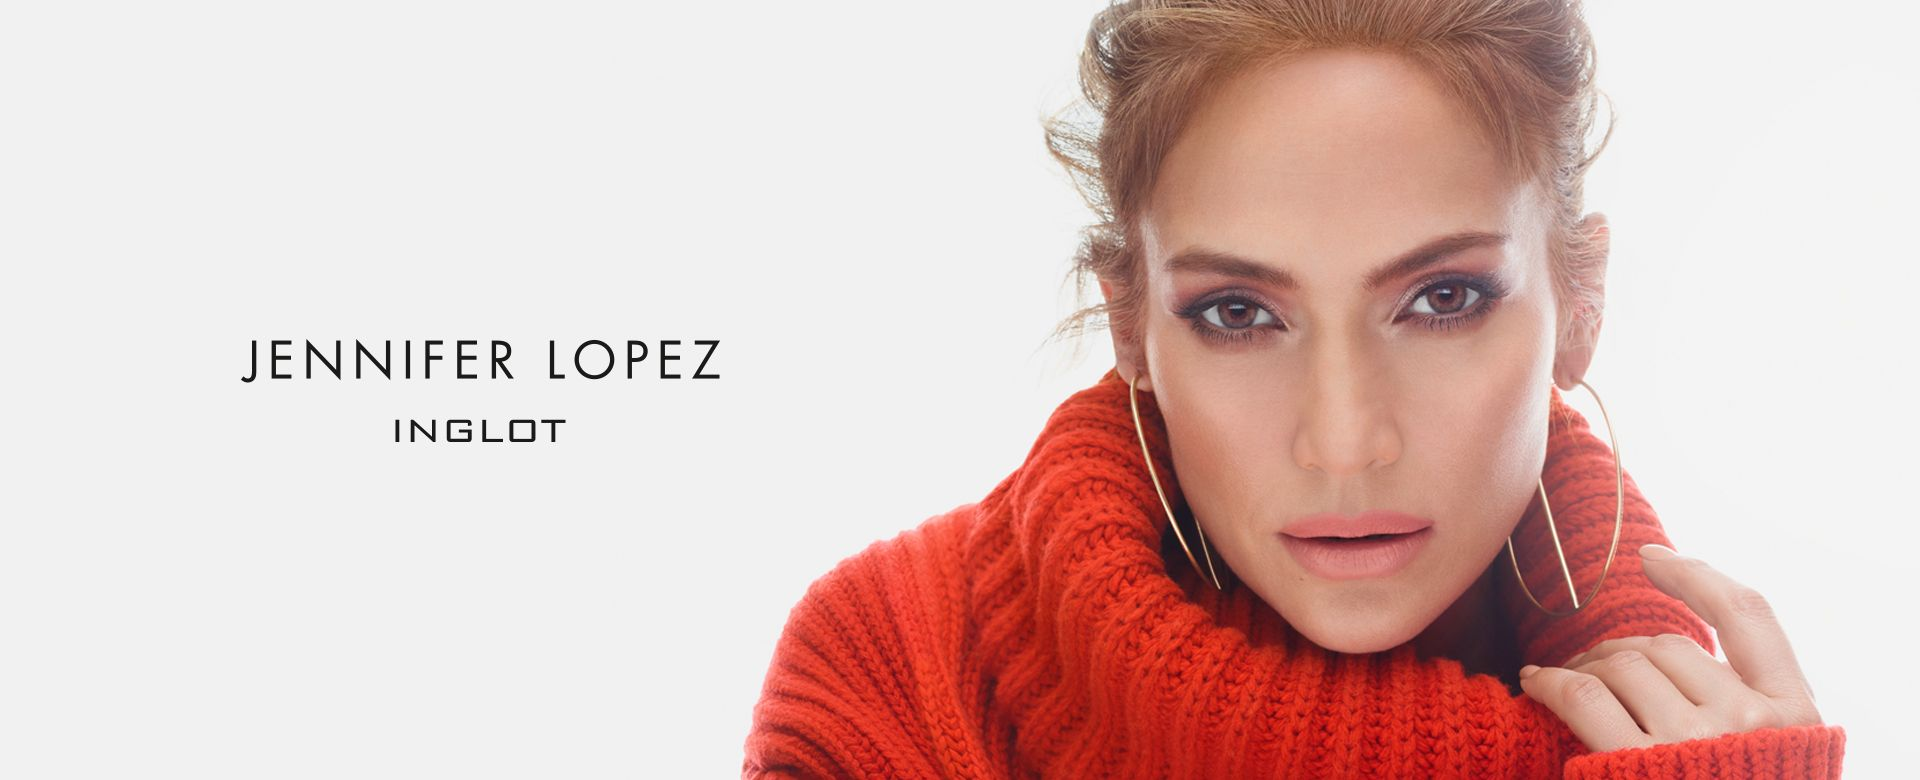 1783083jennifer-lopez-inglot-3rd-look---slider-multi-1920x780px-compressor